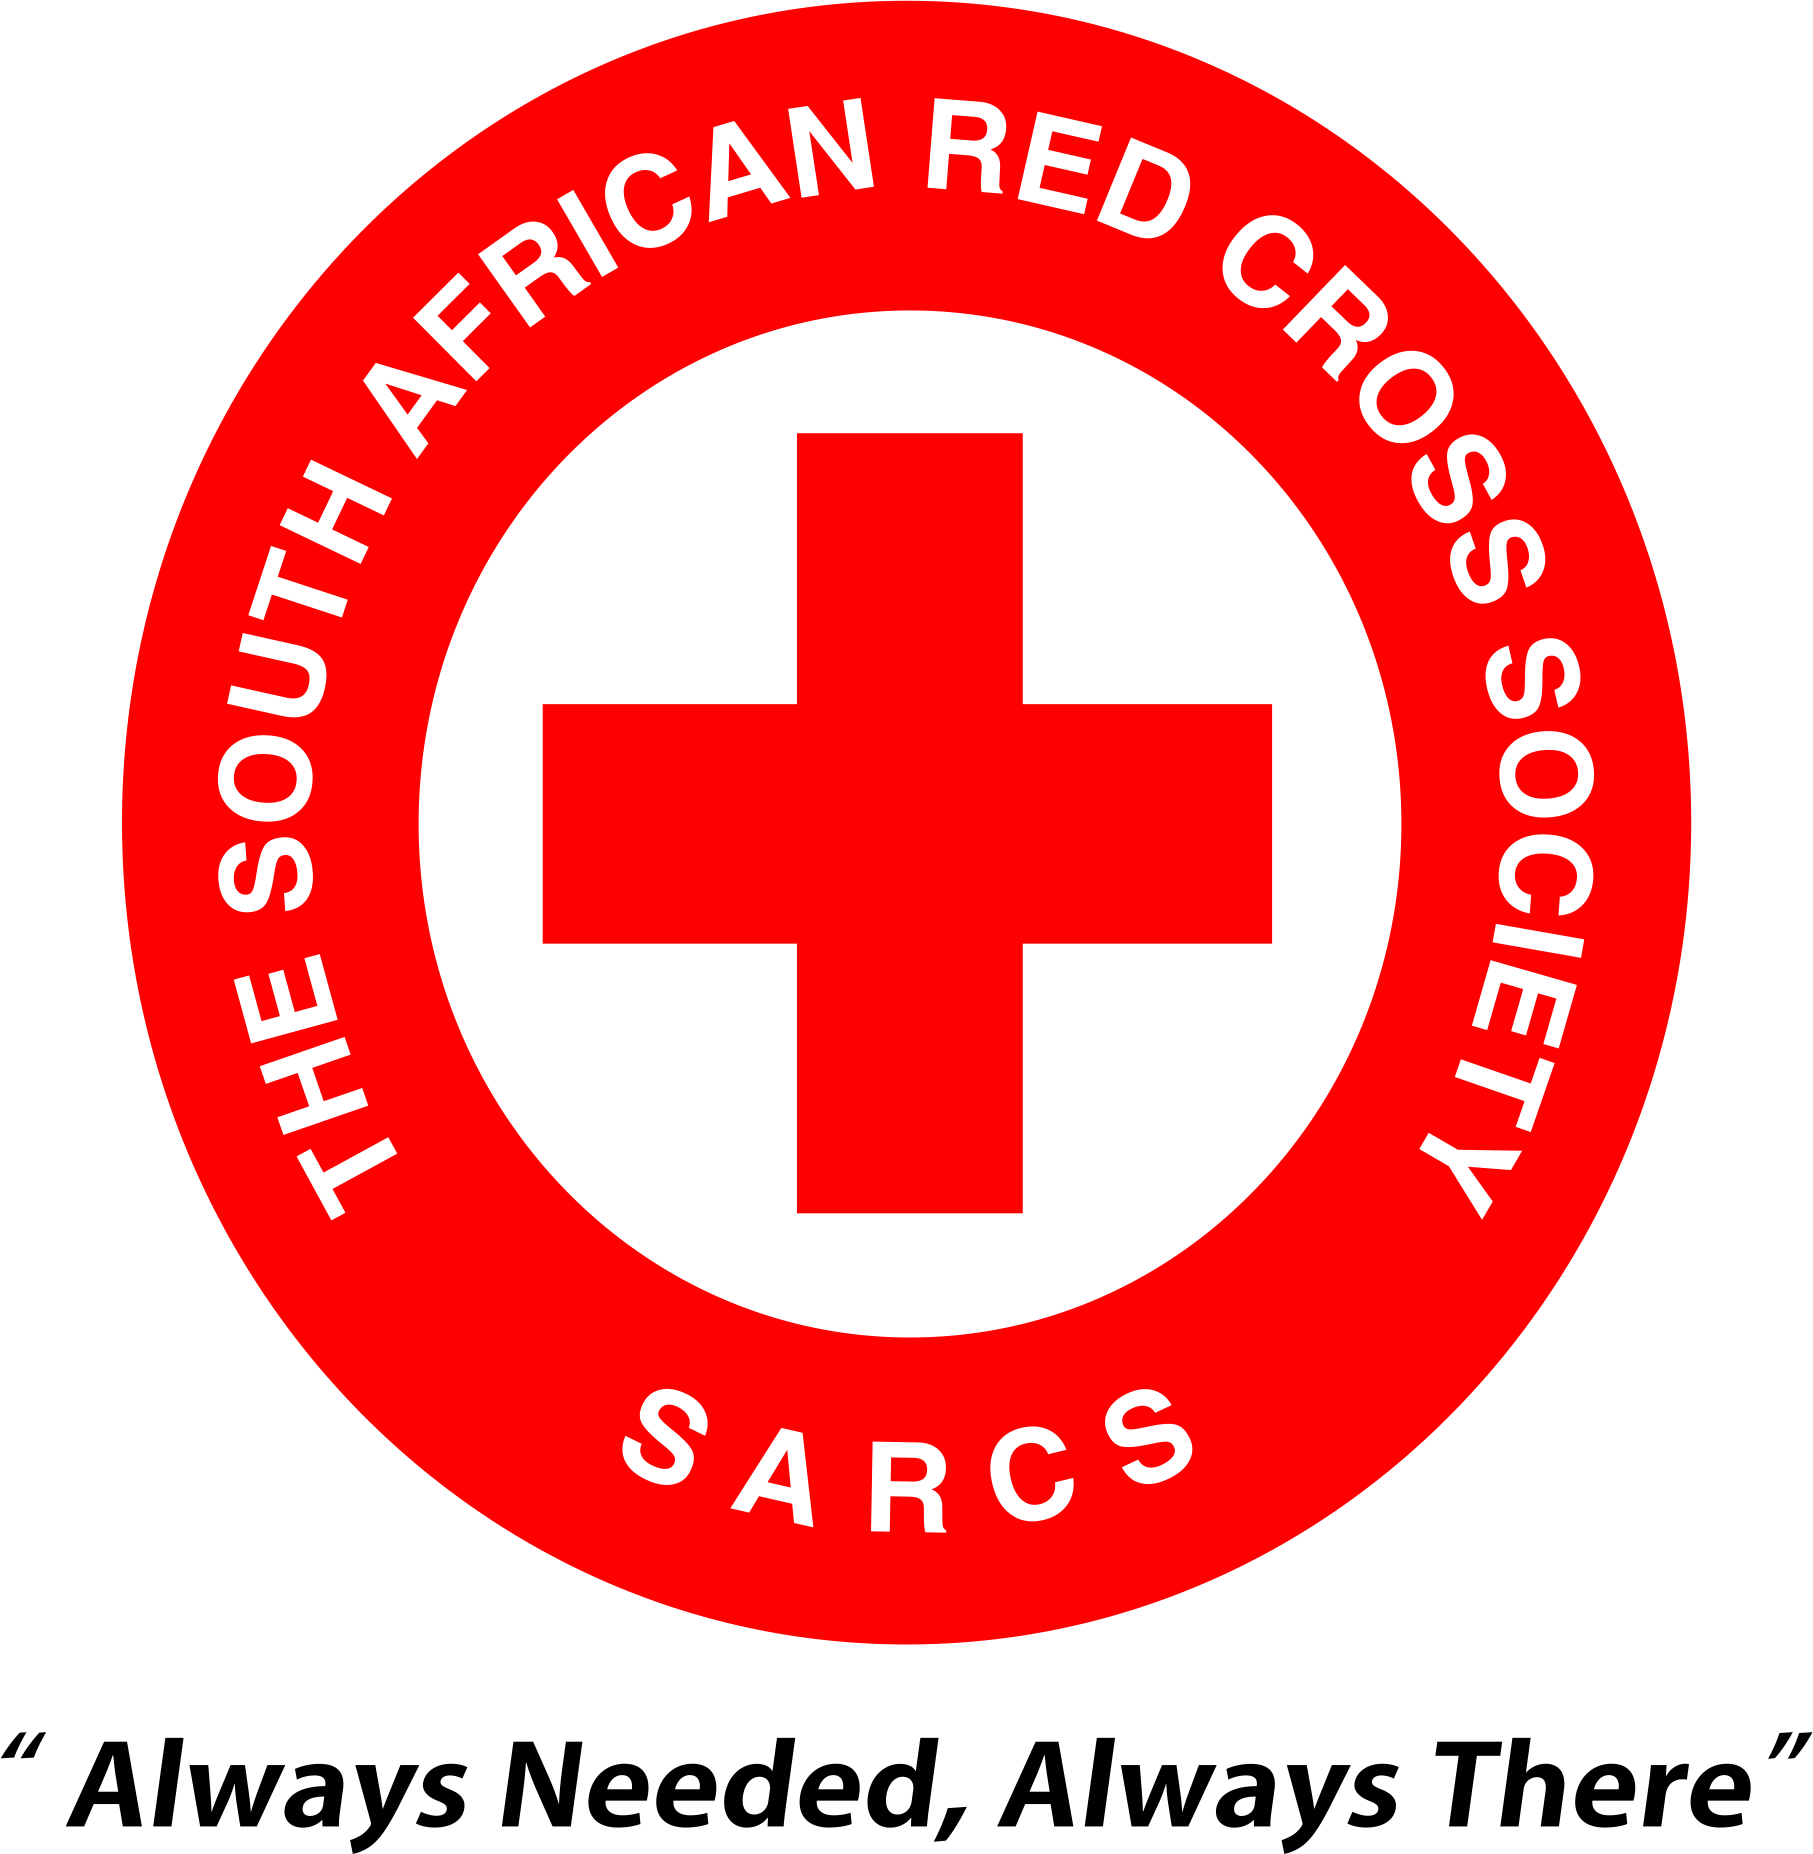 Red Cross addressing global challenges